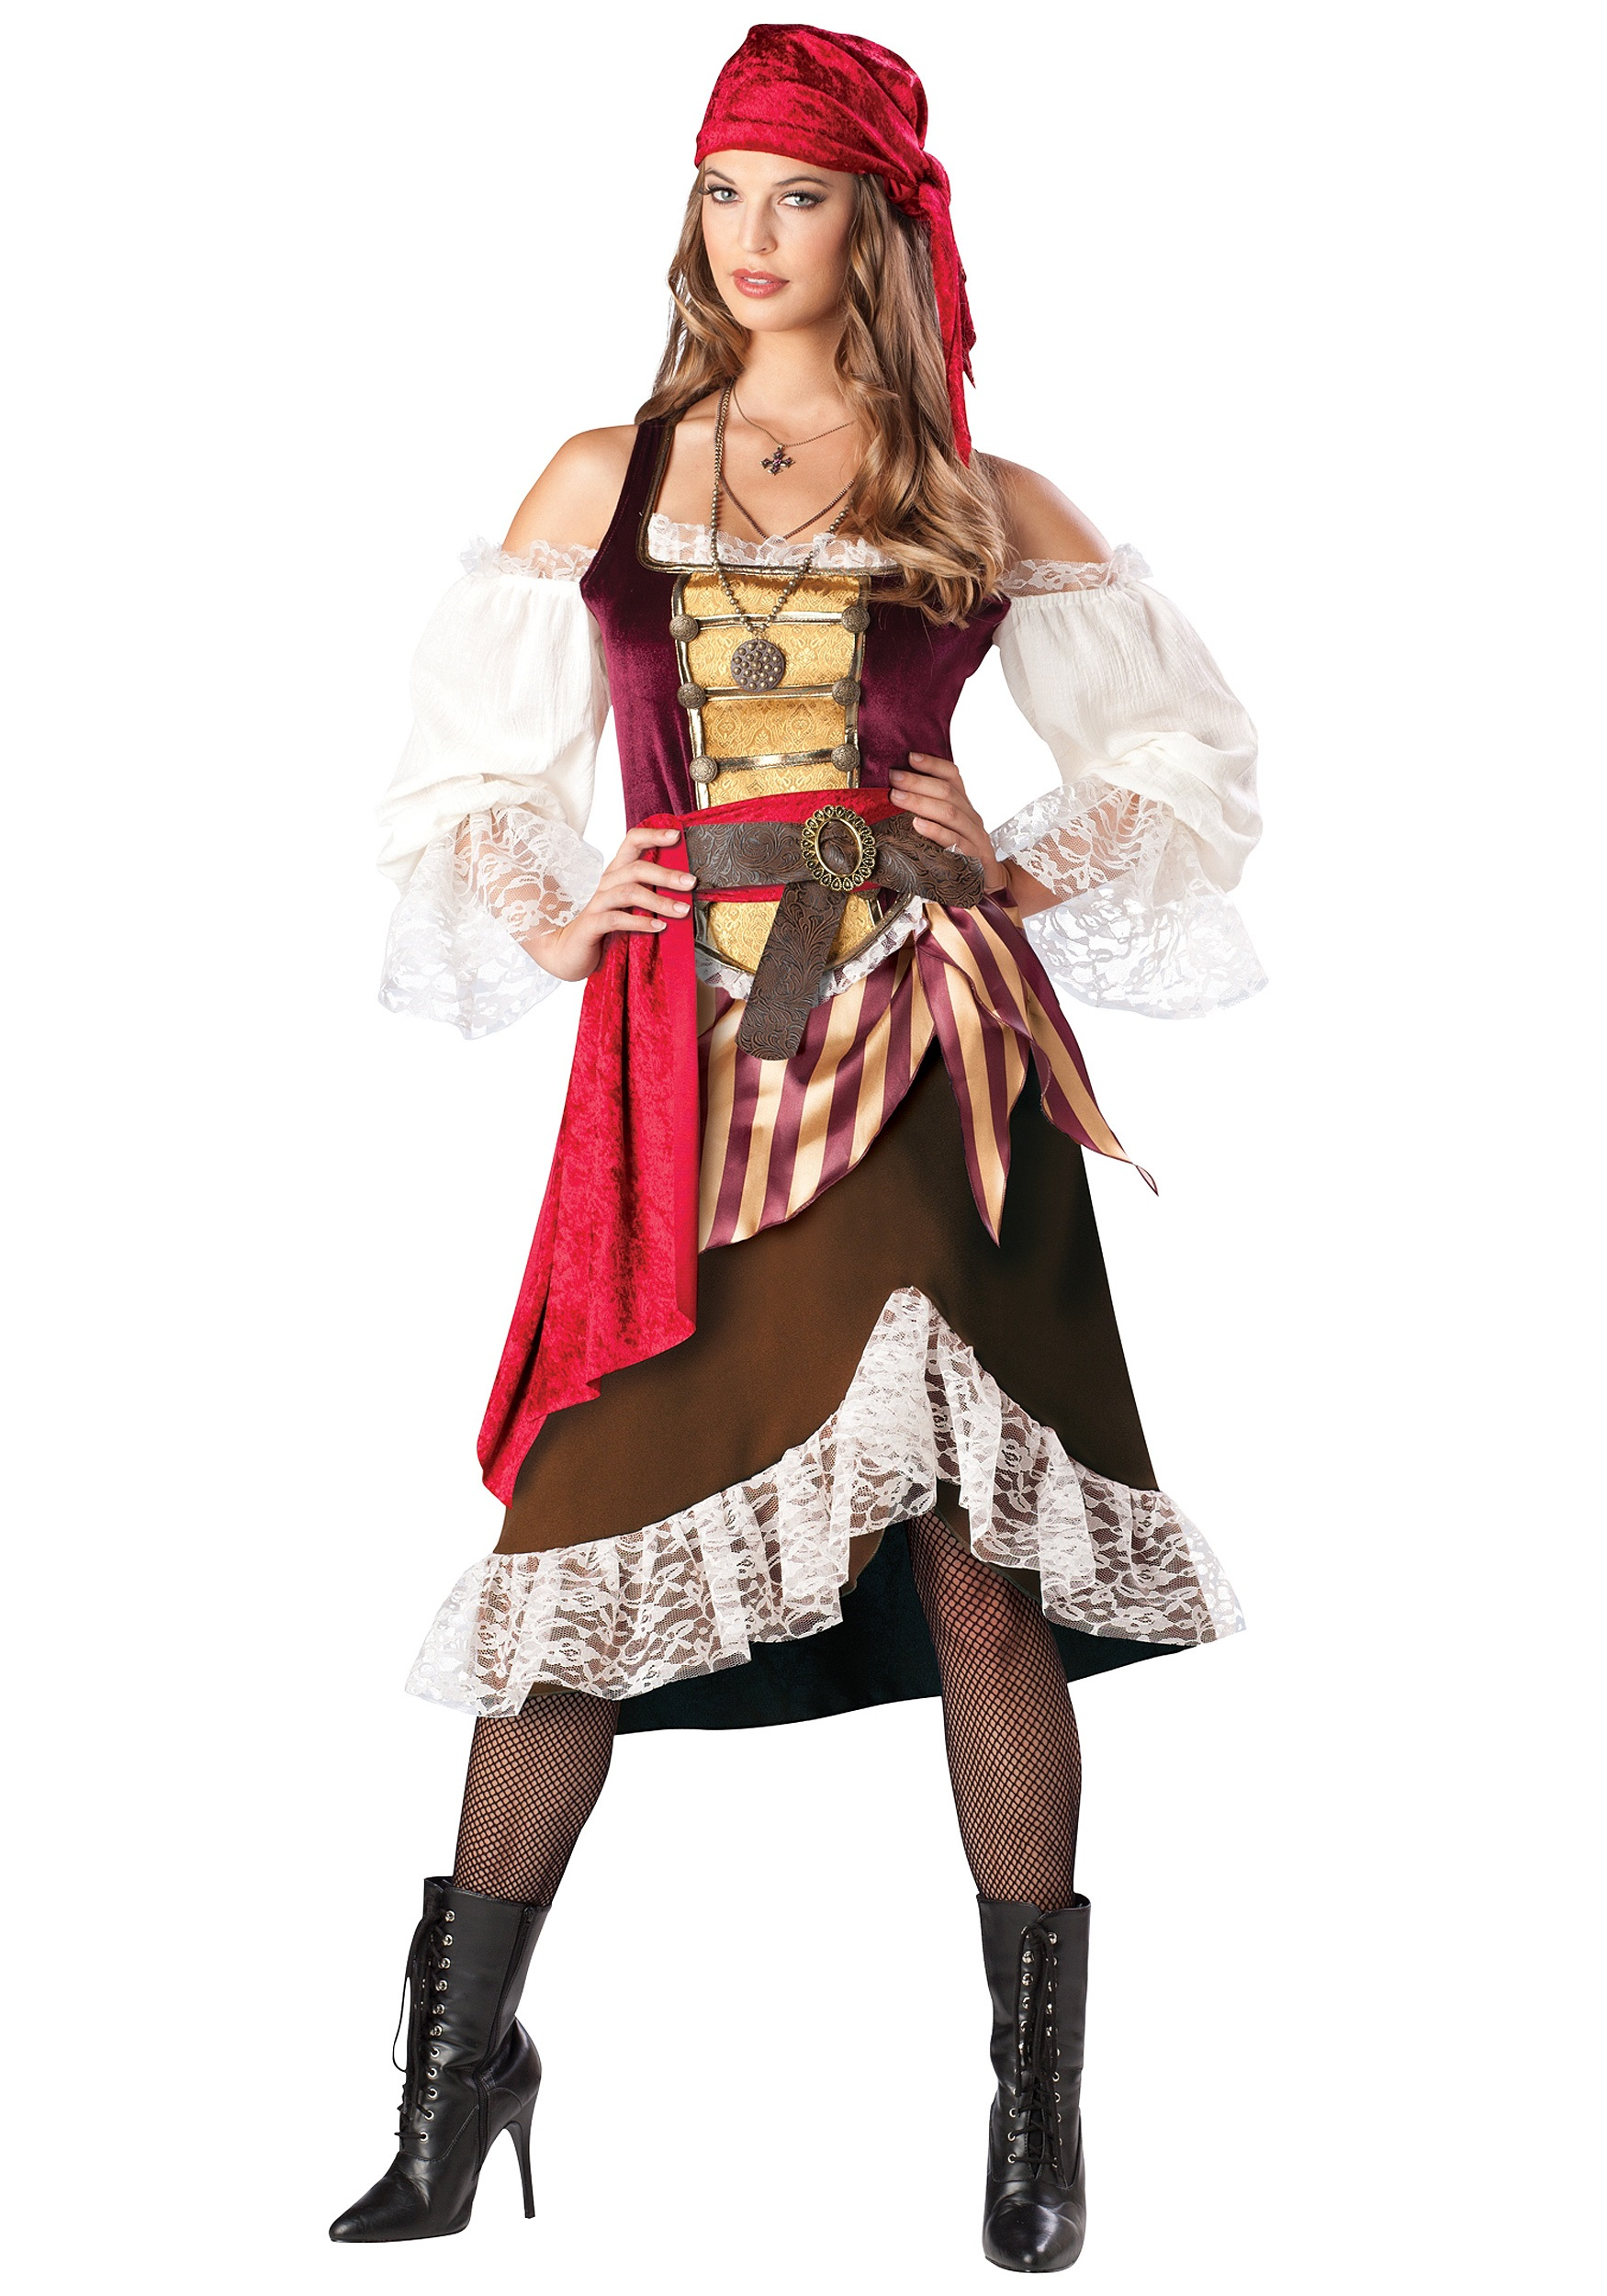 Darling Womens Pirate Costume - Female Authentic Sea Wench Costumes